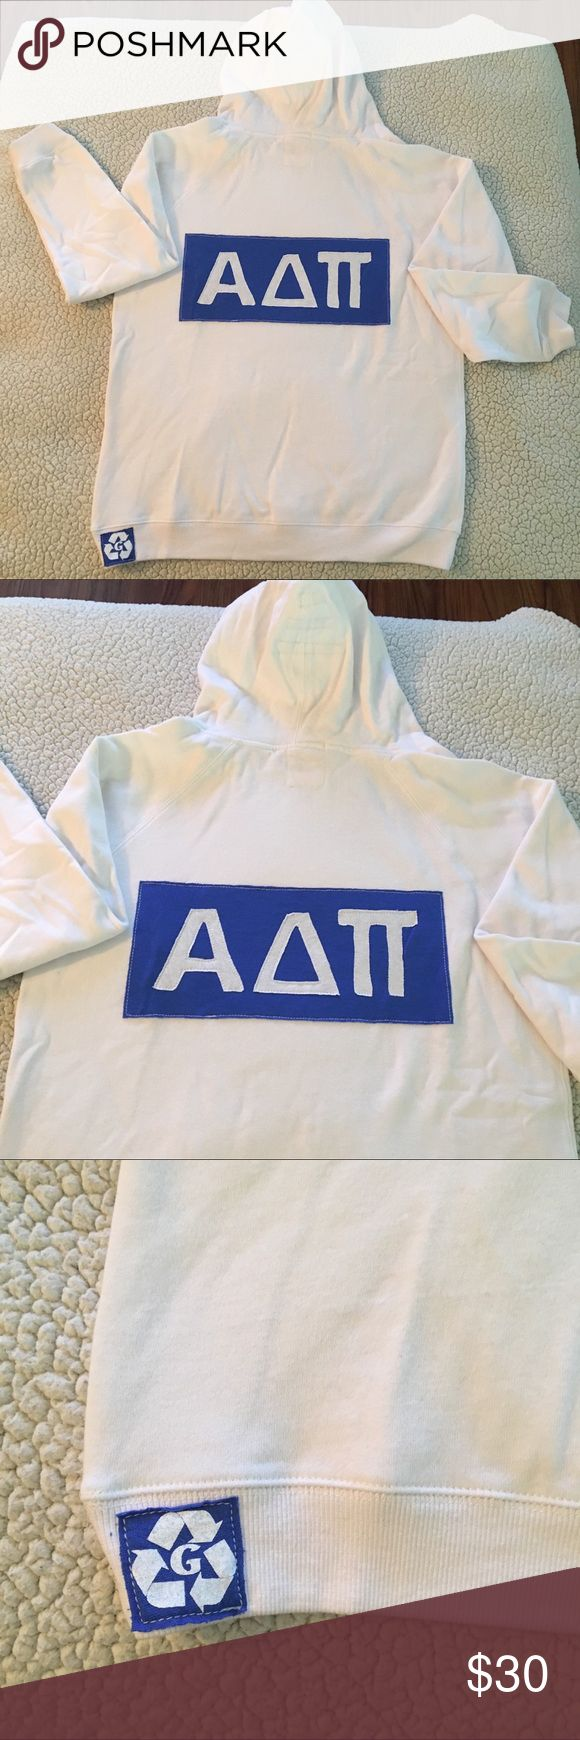 NWT Alpha Delta Pi white pull over sorority hoodie NWT Alpha Delta Pi white pull over hoodie w/ blue sorority lettering. Size AL. 50% poly 46% cotton 4% rayon.  V neck, draw string in hood, logo appliqué on back & solid front. Front kangaroo pockets. Made in USA. $62 retail. RARE and one of a kind. #greek #life #college #university #alpha #delta #pi #sorority #pledge #white #blue #big #little #sister #nwt #hoodie #vneck #fall #football #tailgate Never used. Smoke free home. Check closet for…